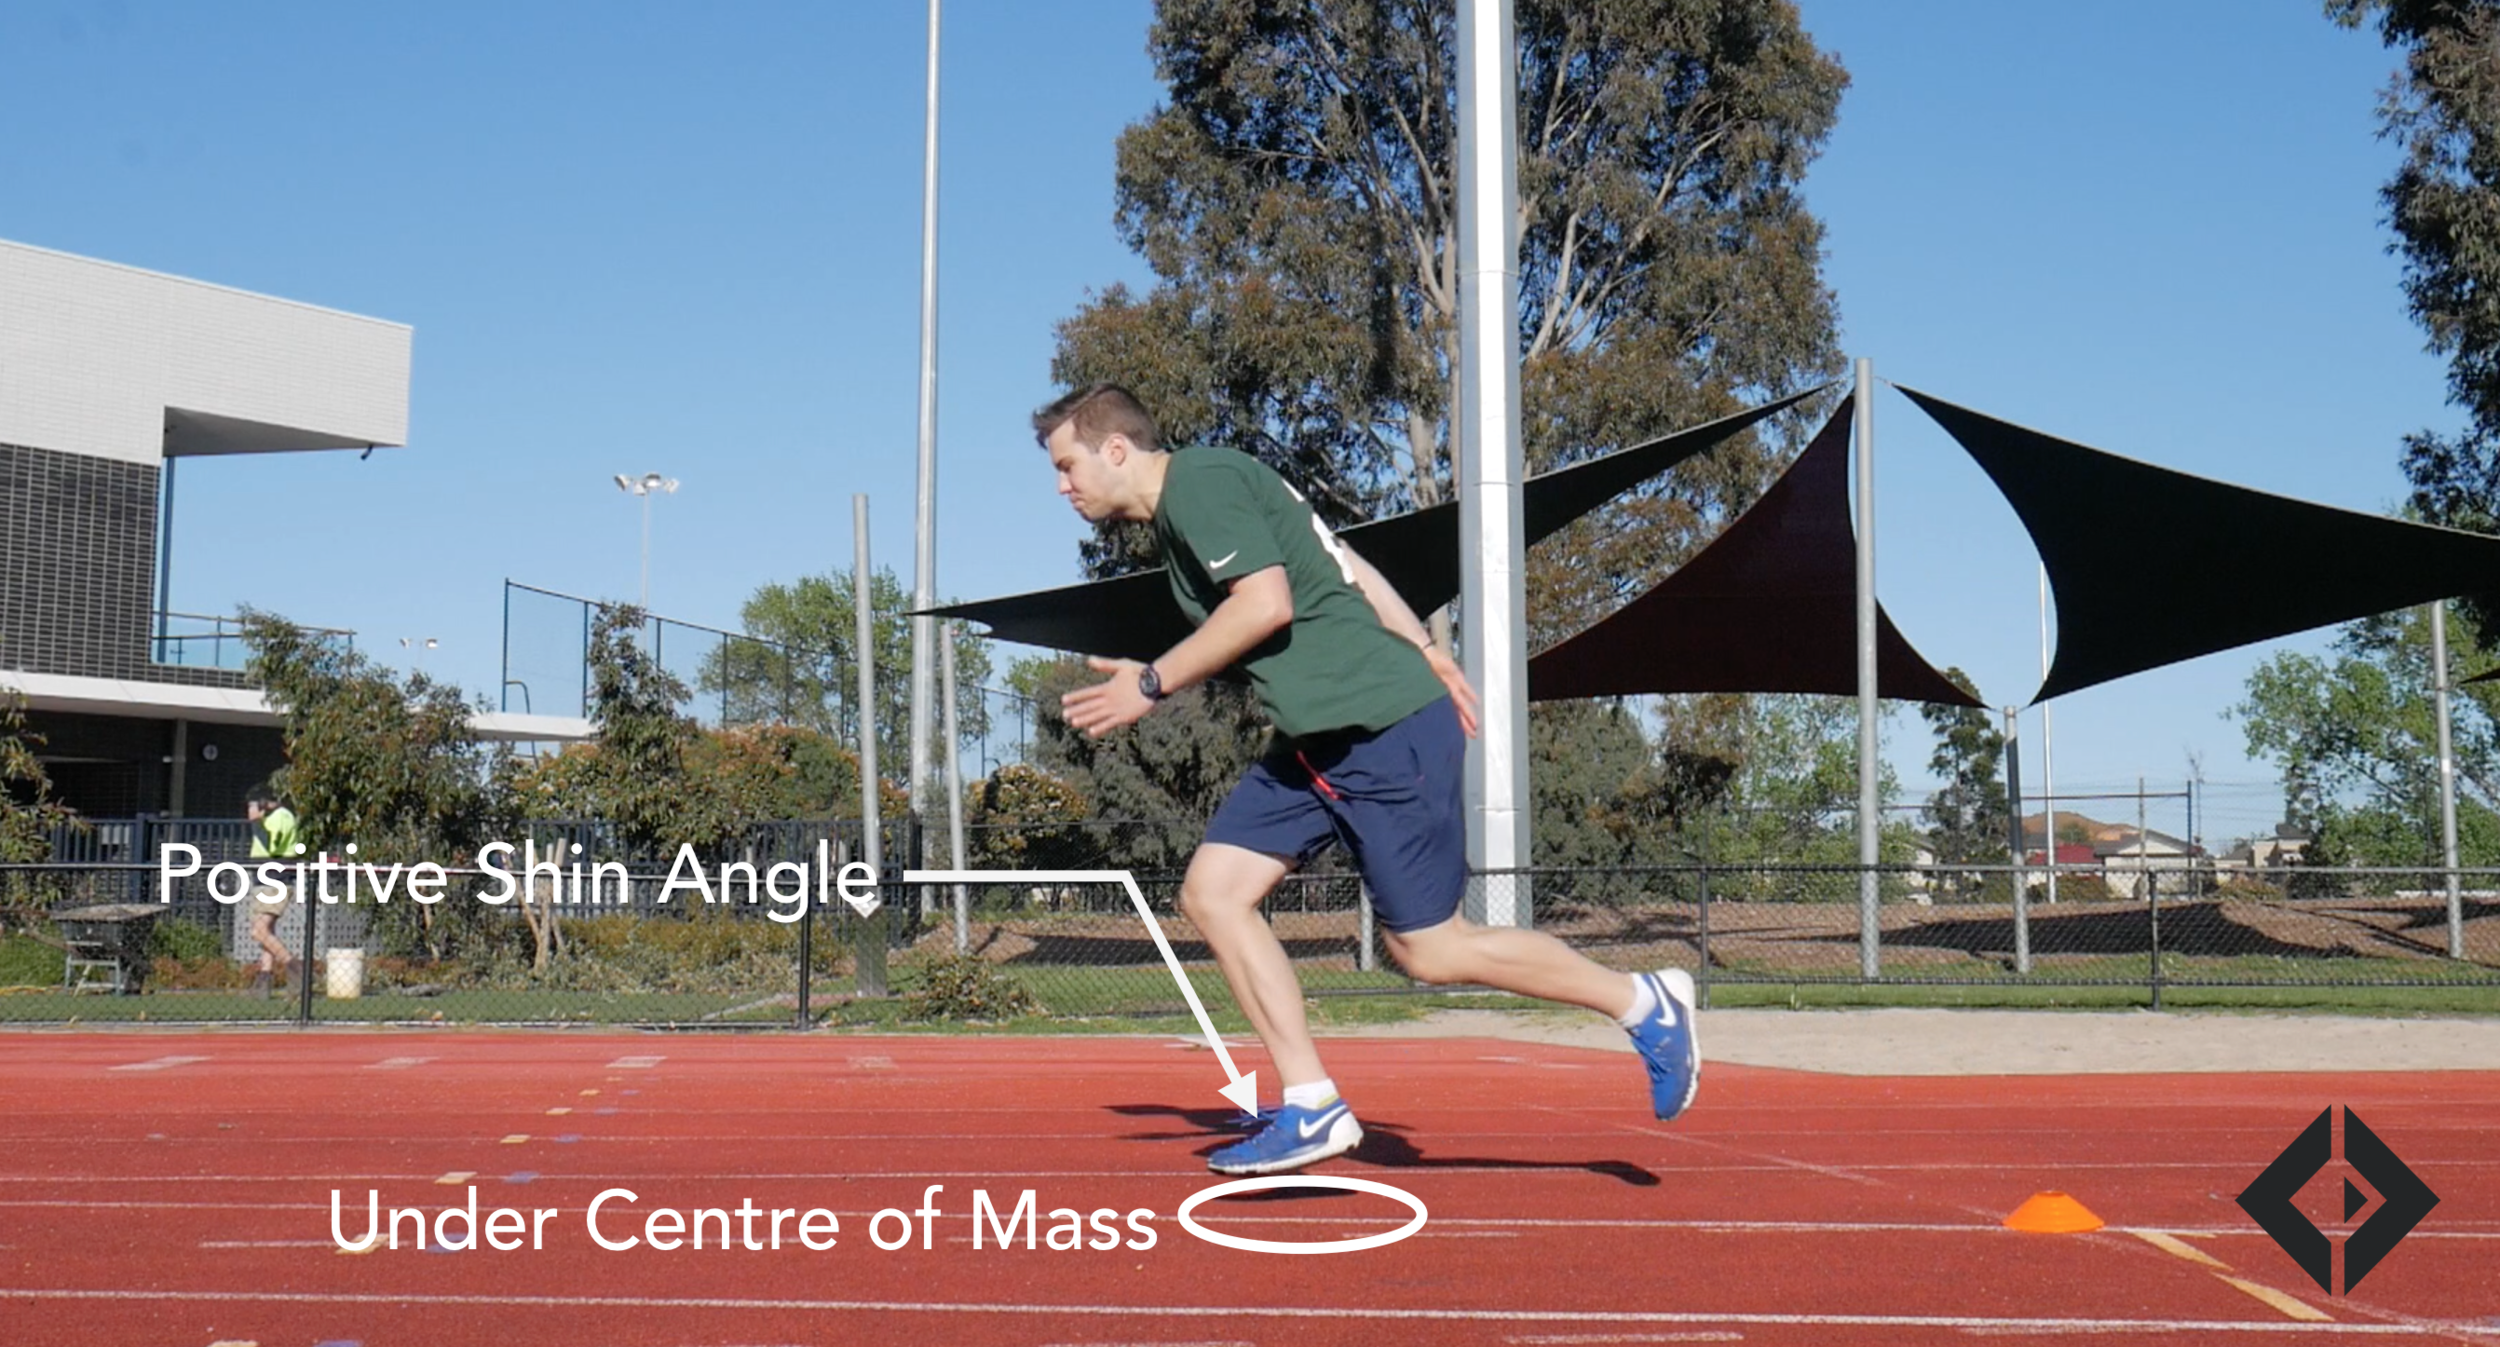 Positive Shin Angle. The goal in acceleration is to strike the ground directly under the centre of mass with the foot driving the ground backwards, miniming ground contact and maximising horizontal force.